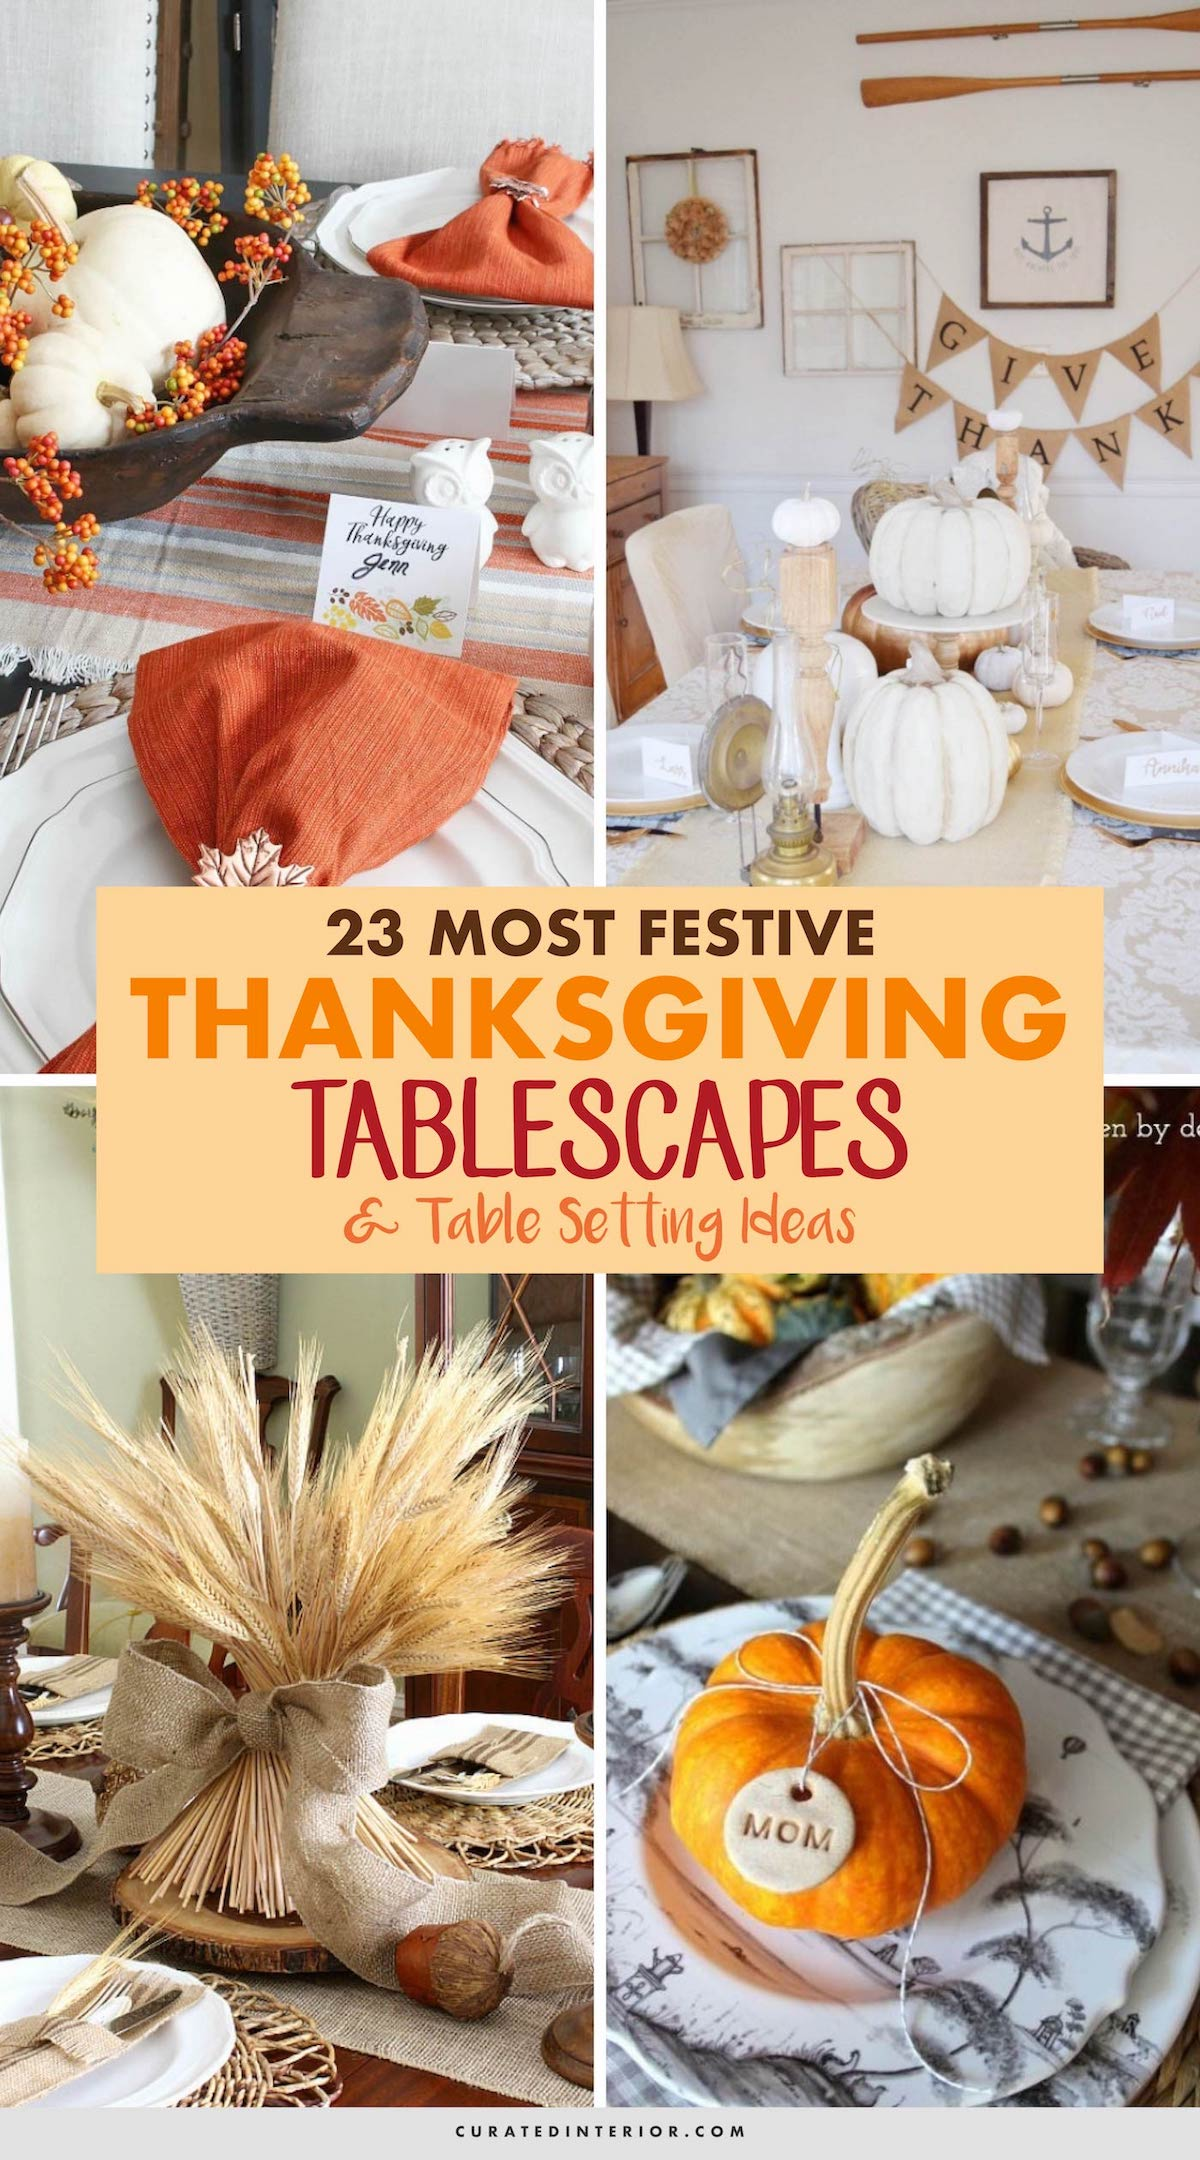 23 Most Festive Thanksgiving Tablescapes And Table Setting Ideas #Thanksgiving #ThanksgivingDecor #ThanksgivingIdeas